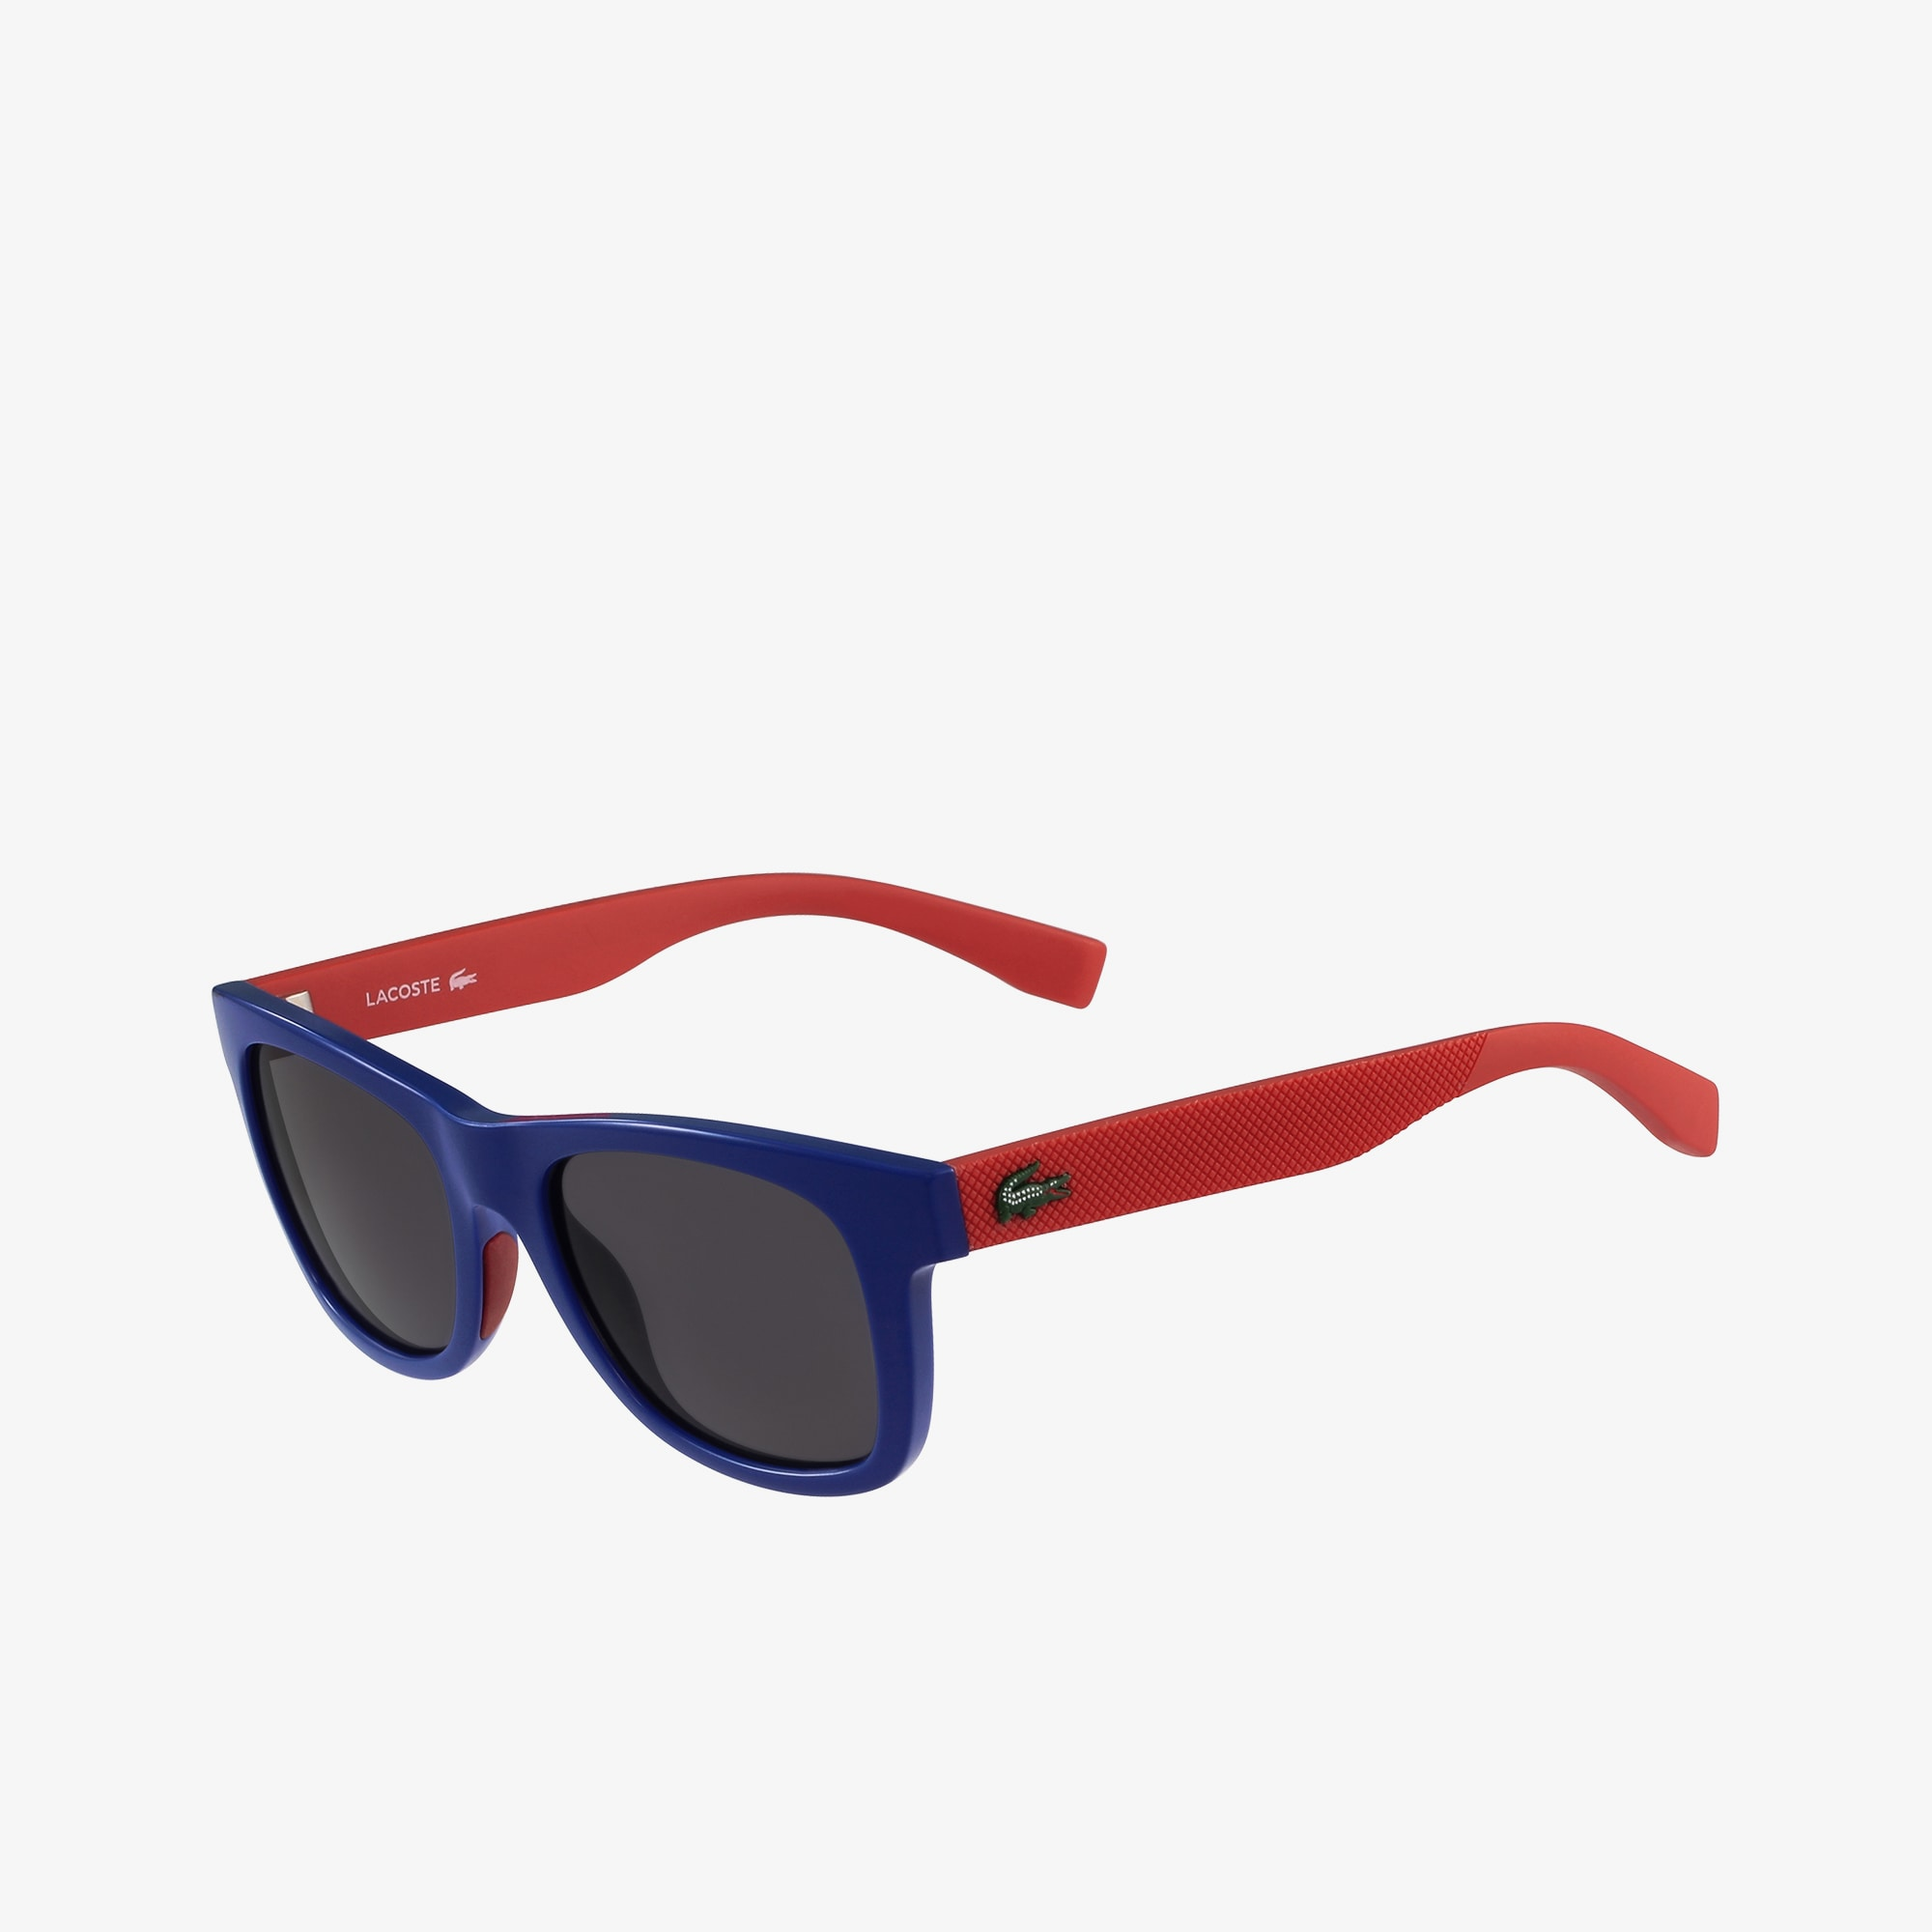 Kids' Rectangle Plastic L.12.12 Sunglasses